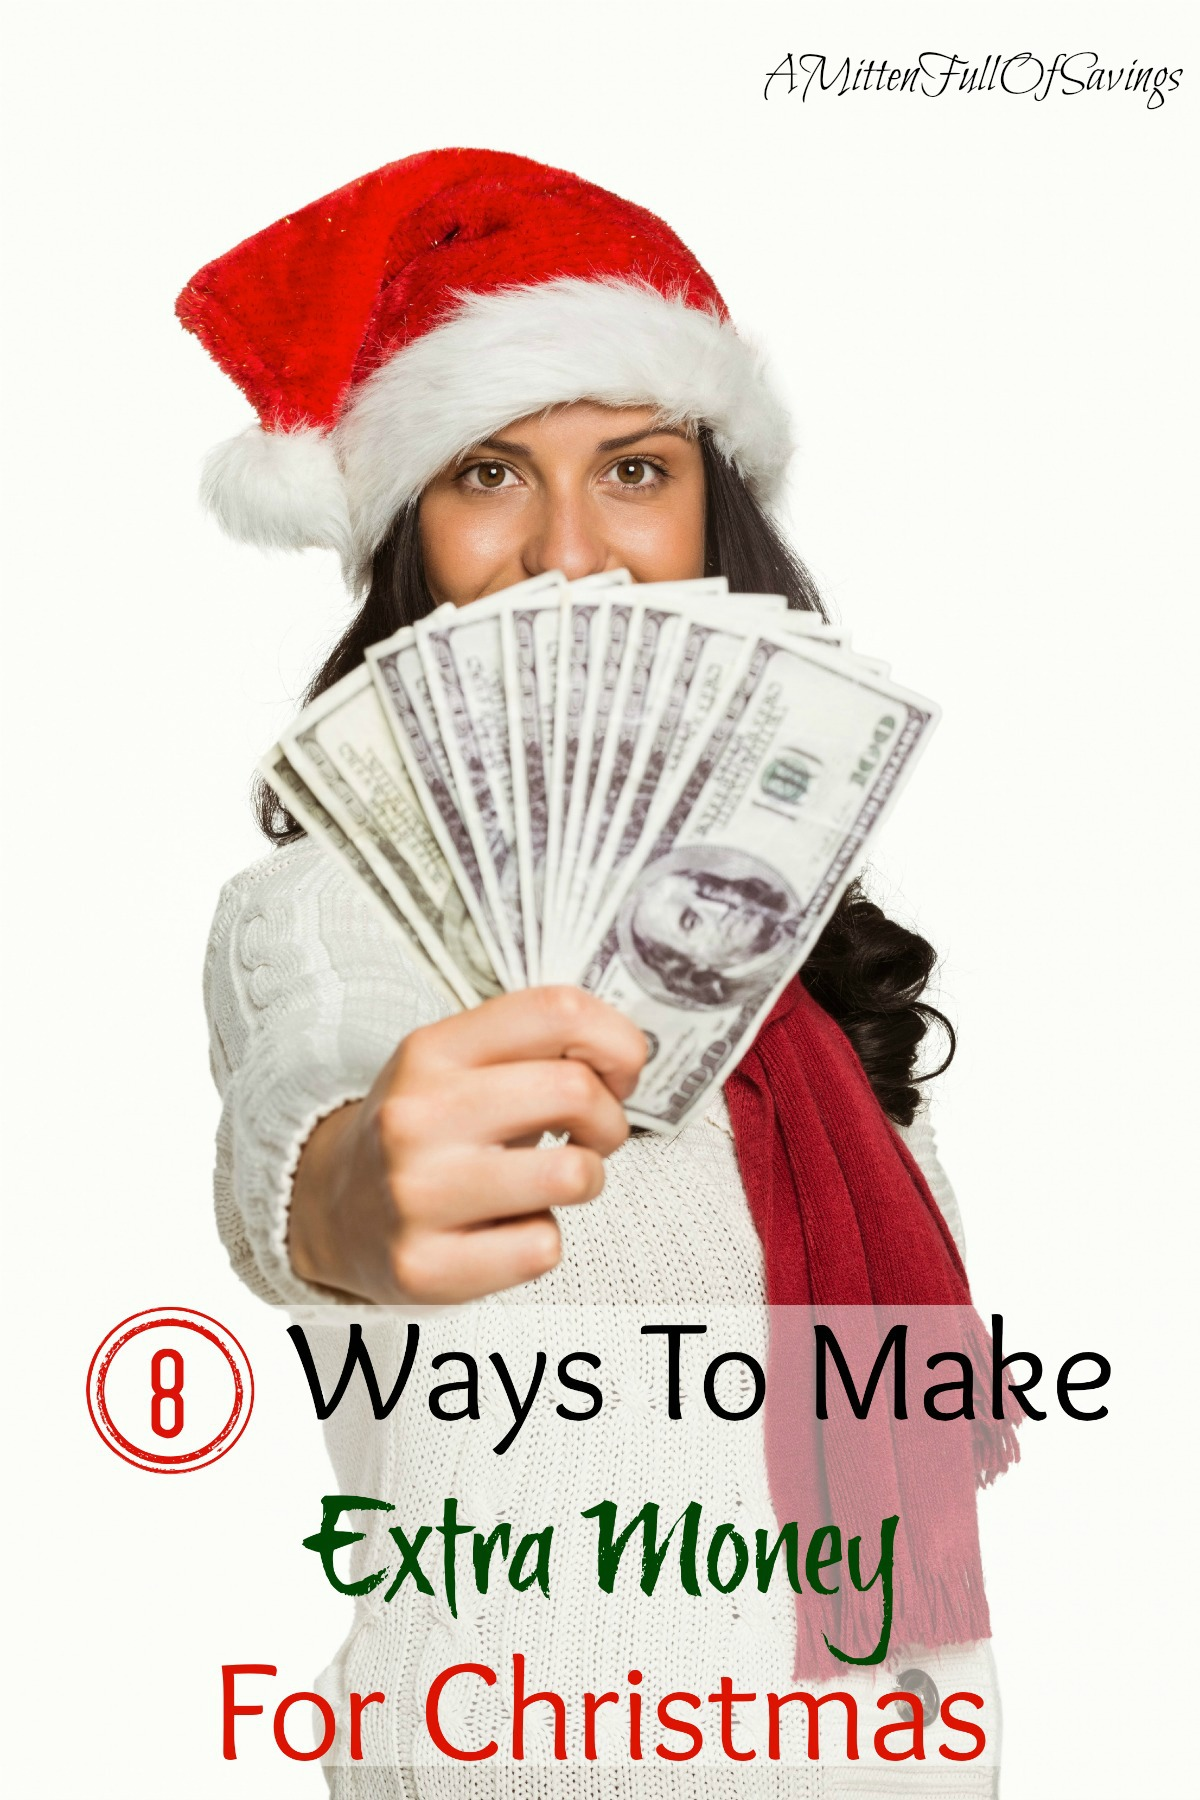 8 Ways To Make Extra Money For Christmas - A Mitten Full of Savings